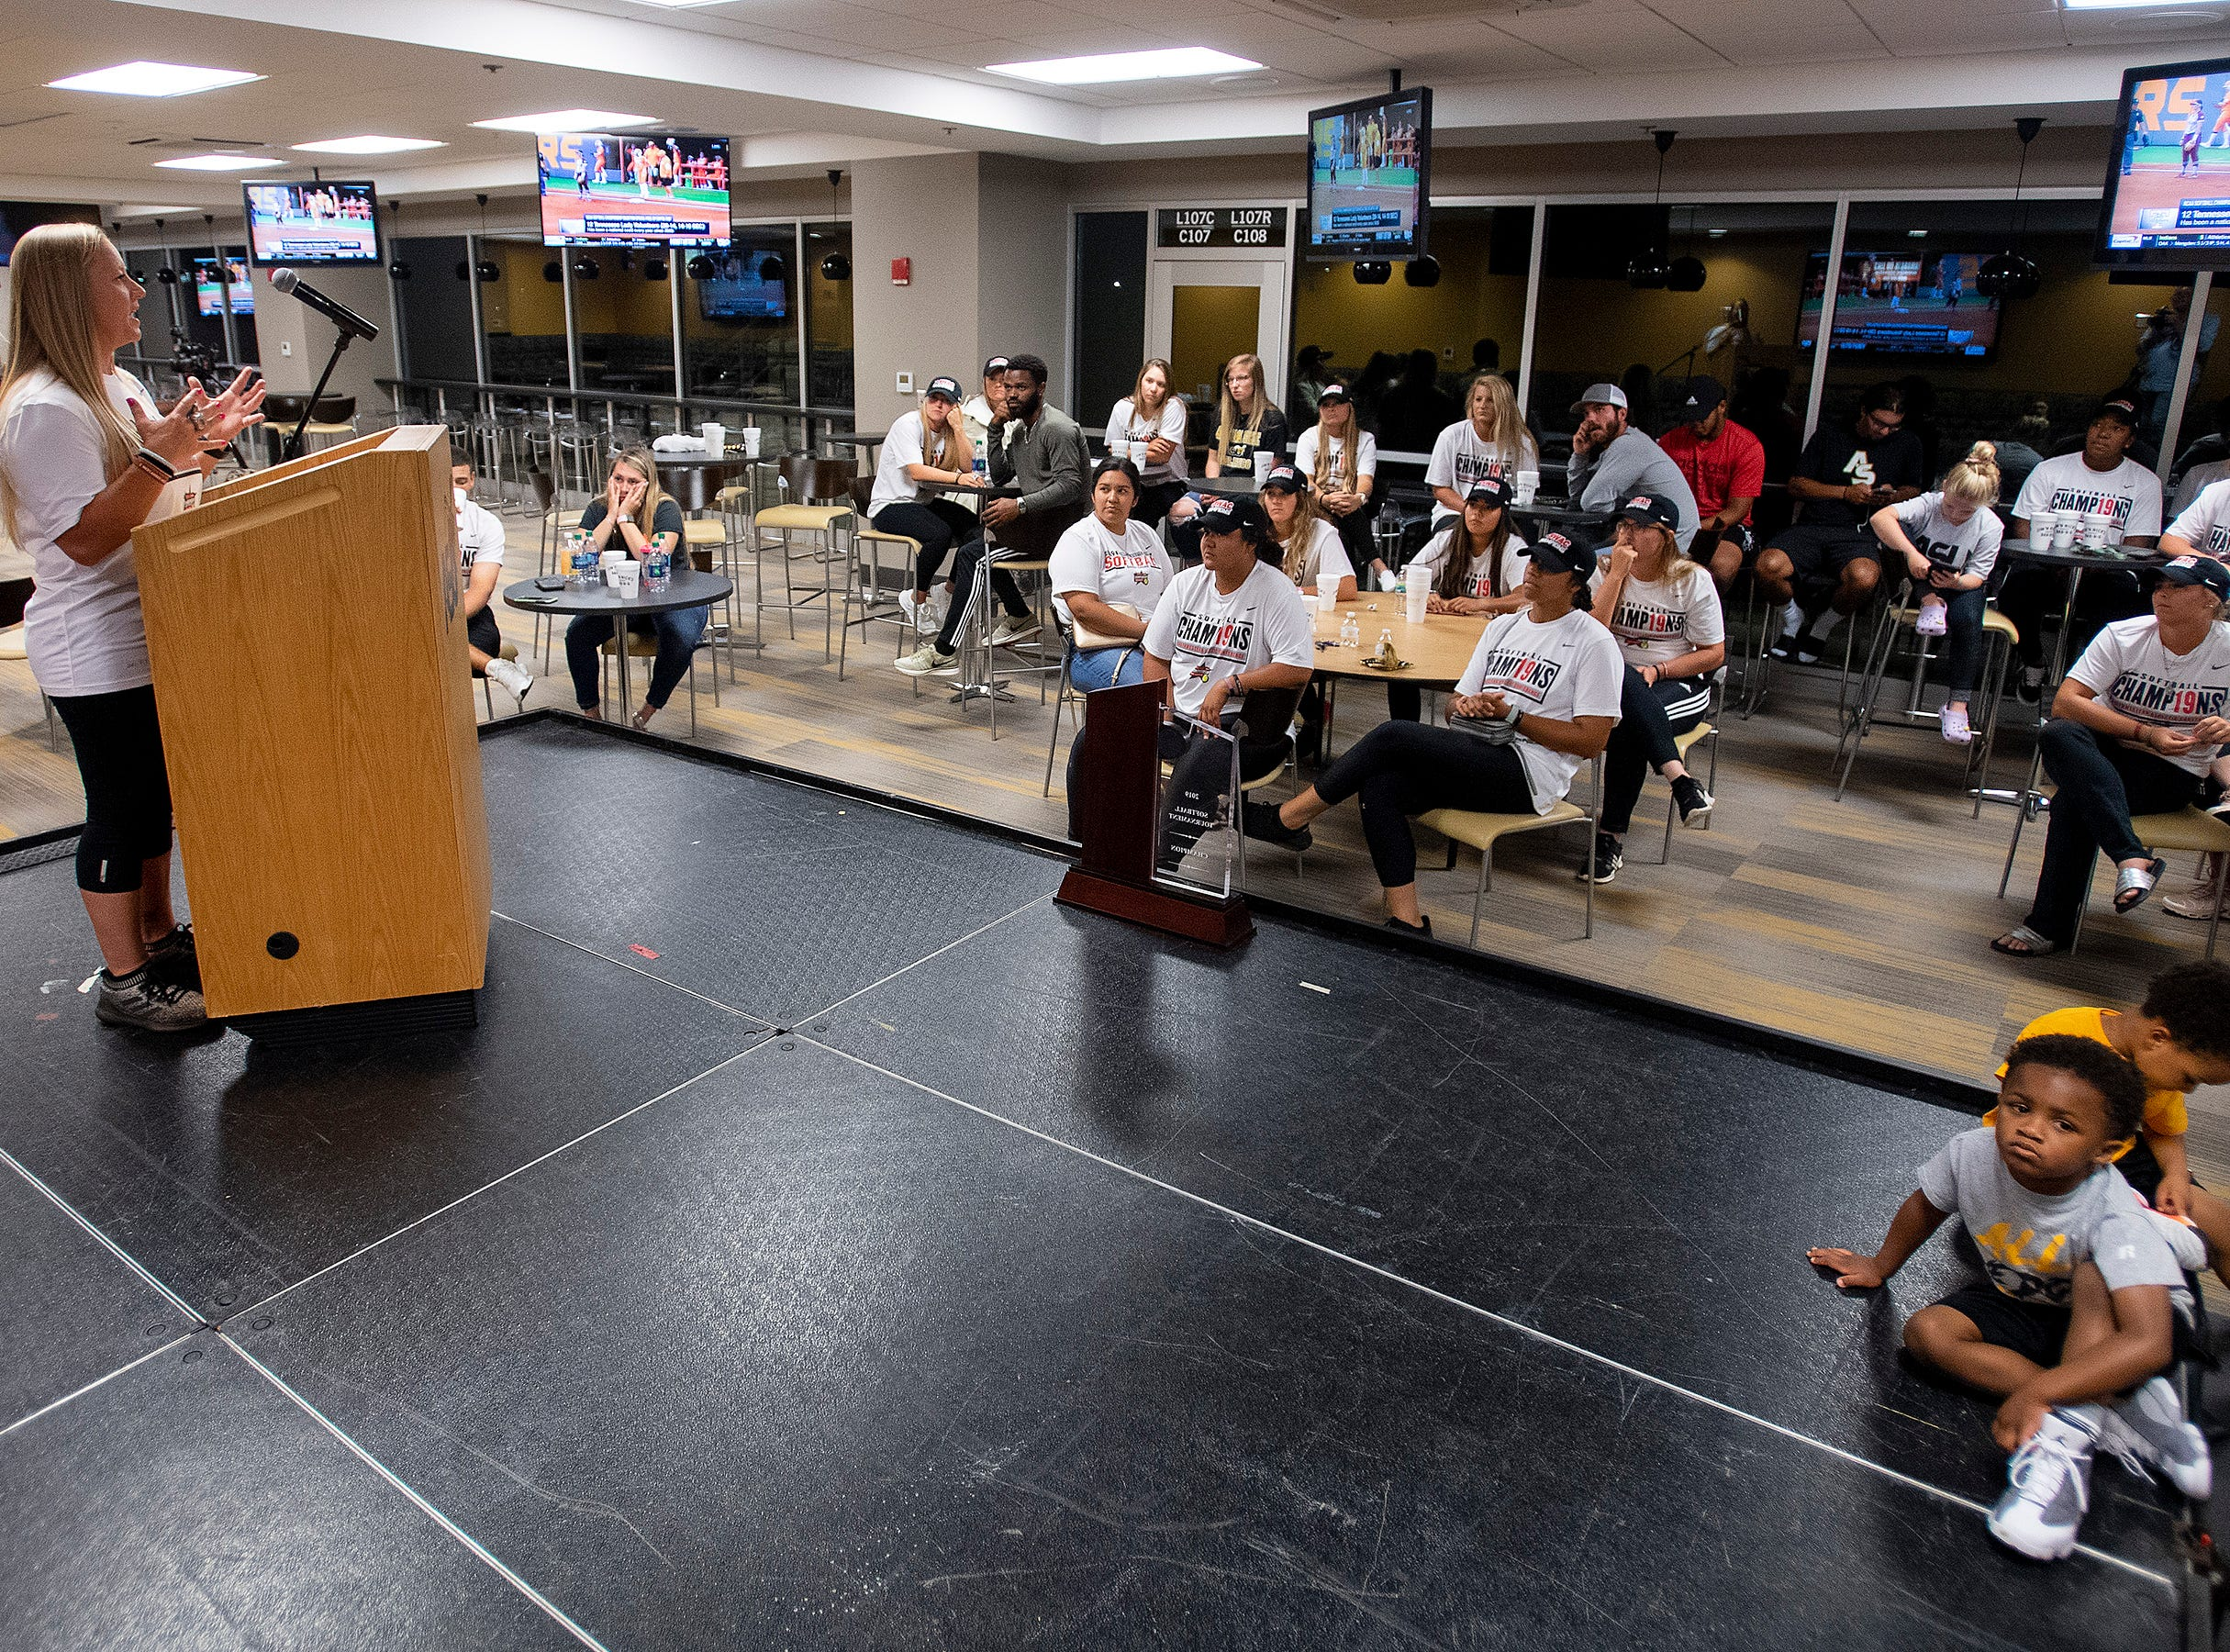 Alabama State University Softball coach Chris Steiner-Wilcoxson speaks at the teams watch party, on the ASU campus in Montgomery, Ala., on Sunday evening May 12, 2019, to see where they will play in the NCAA Softball Tournament. ASU plays Alabama in Tuscaloosa.